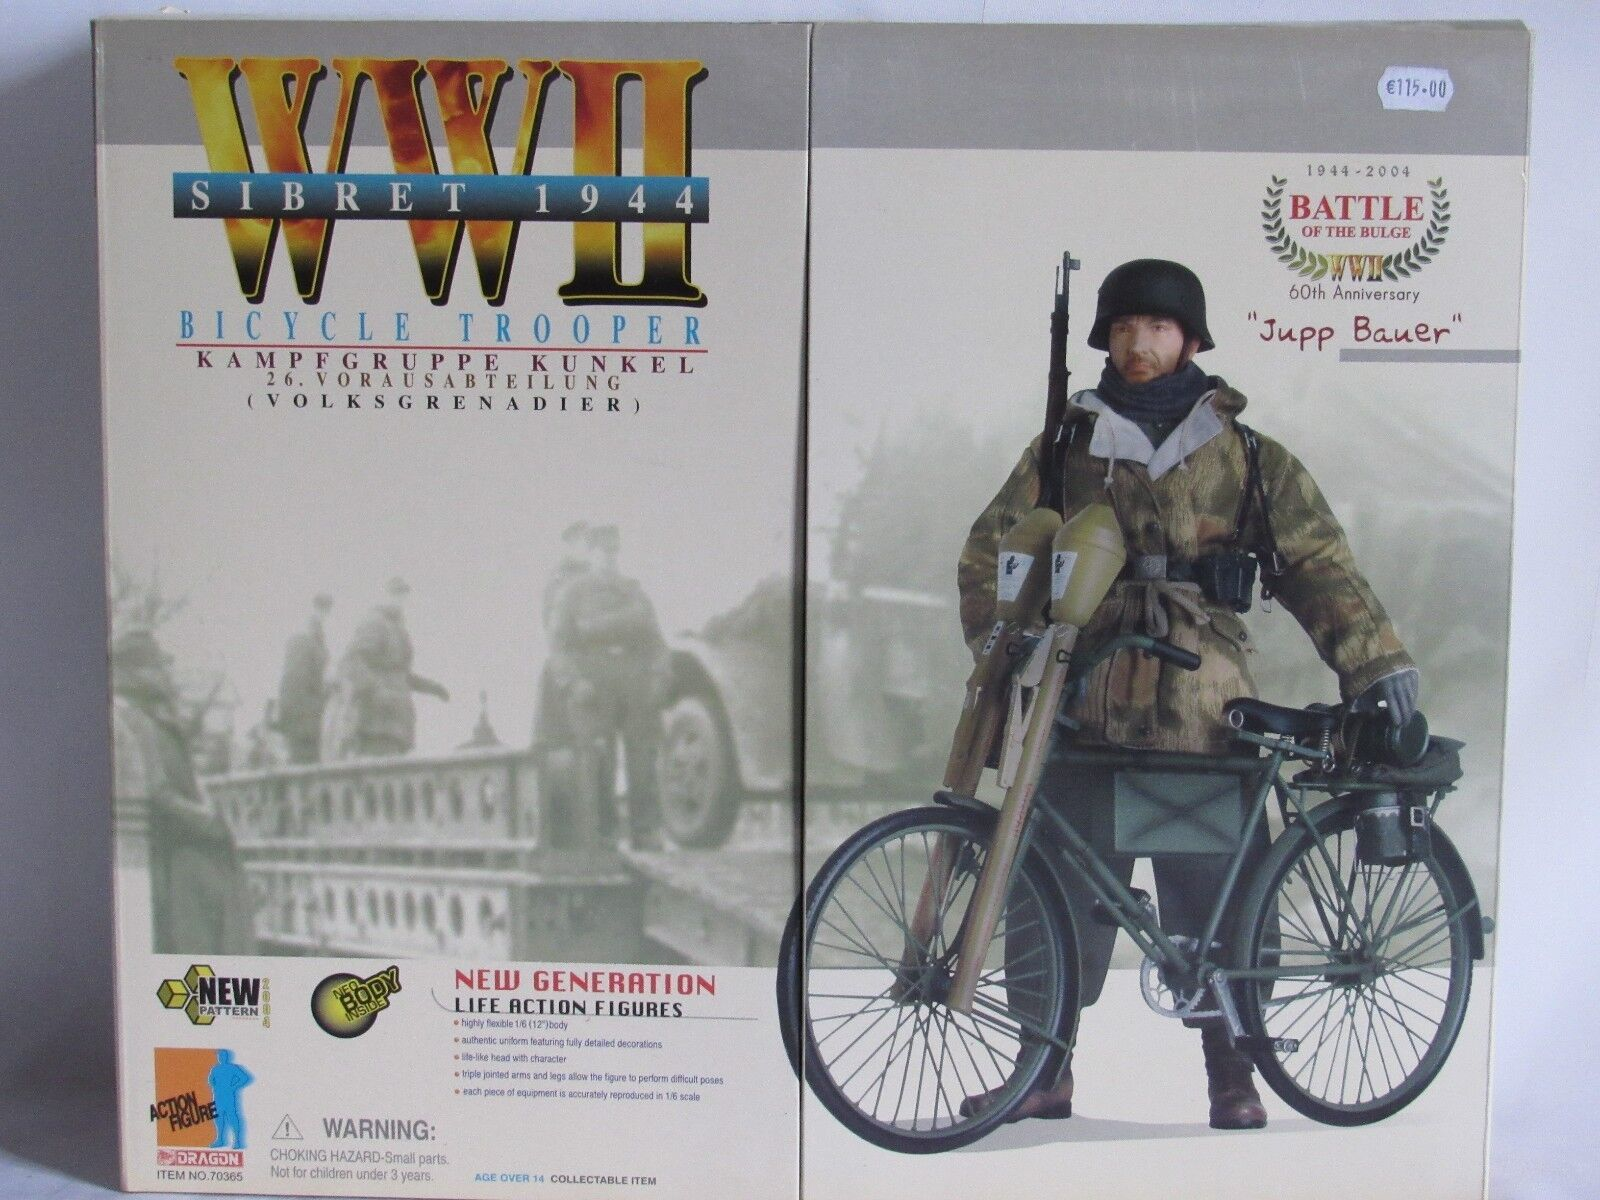 04e2 Dragon Acción German Figura Soldado Bicycle Trooper Jupp Bauer Ww2 39 45